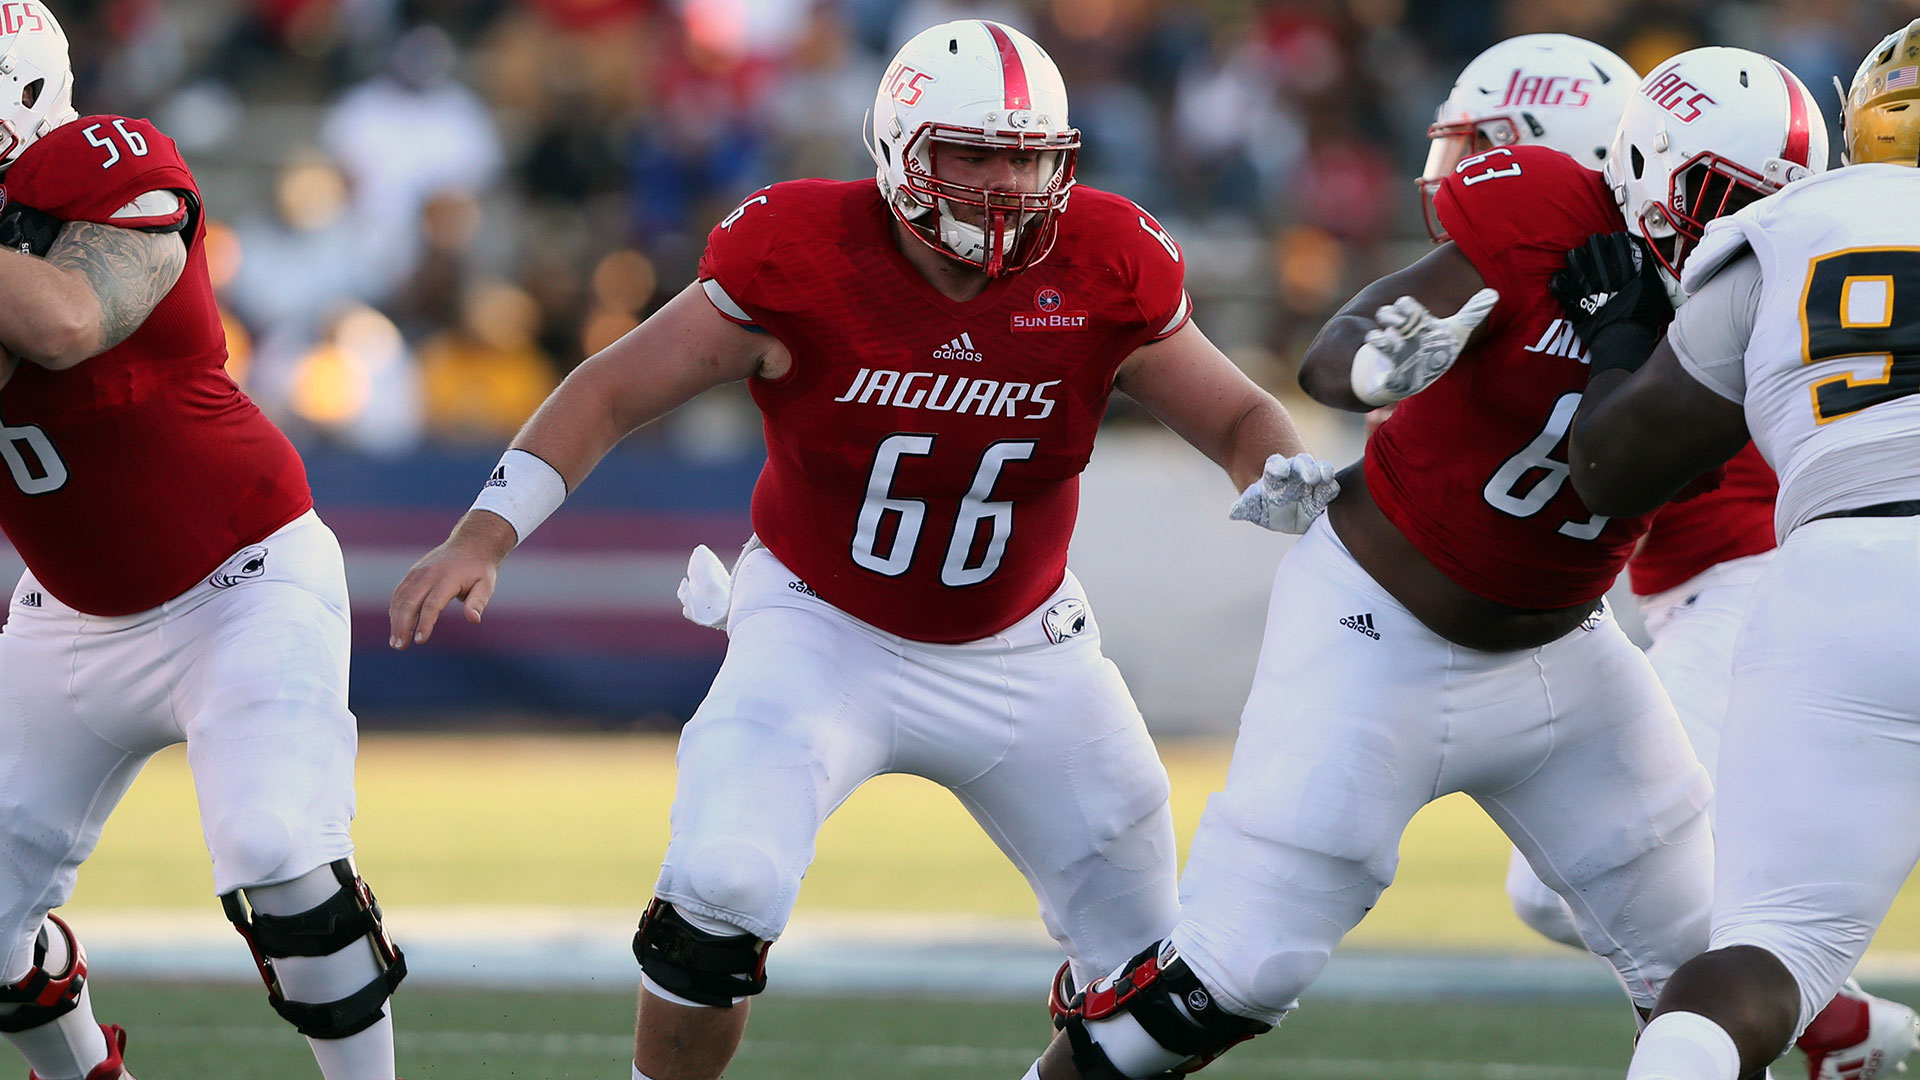 WNSP interview with Brian Ankerson, center at South Alabama